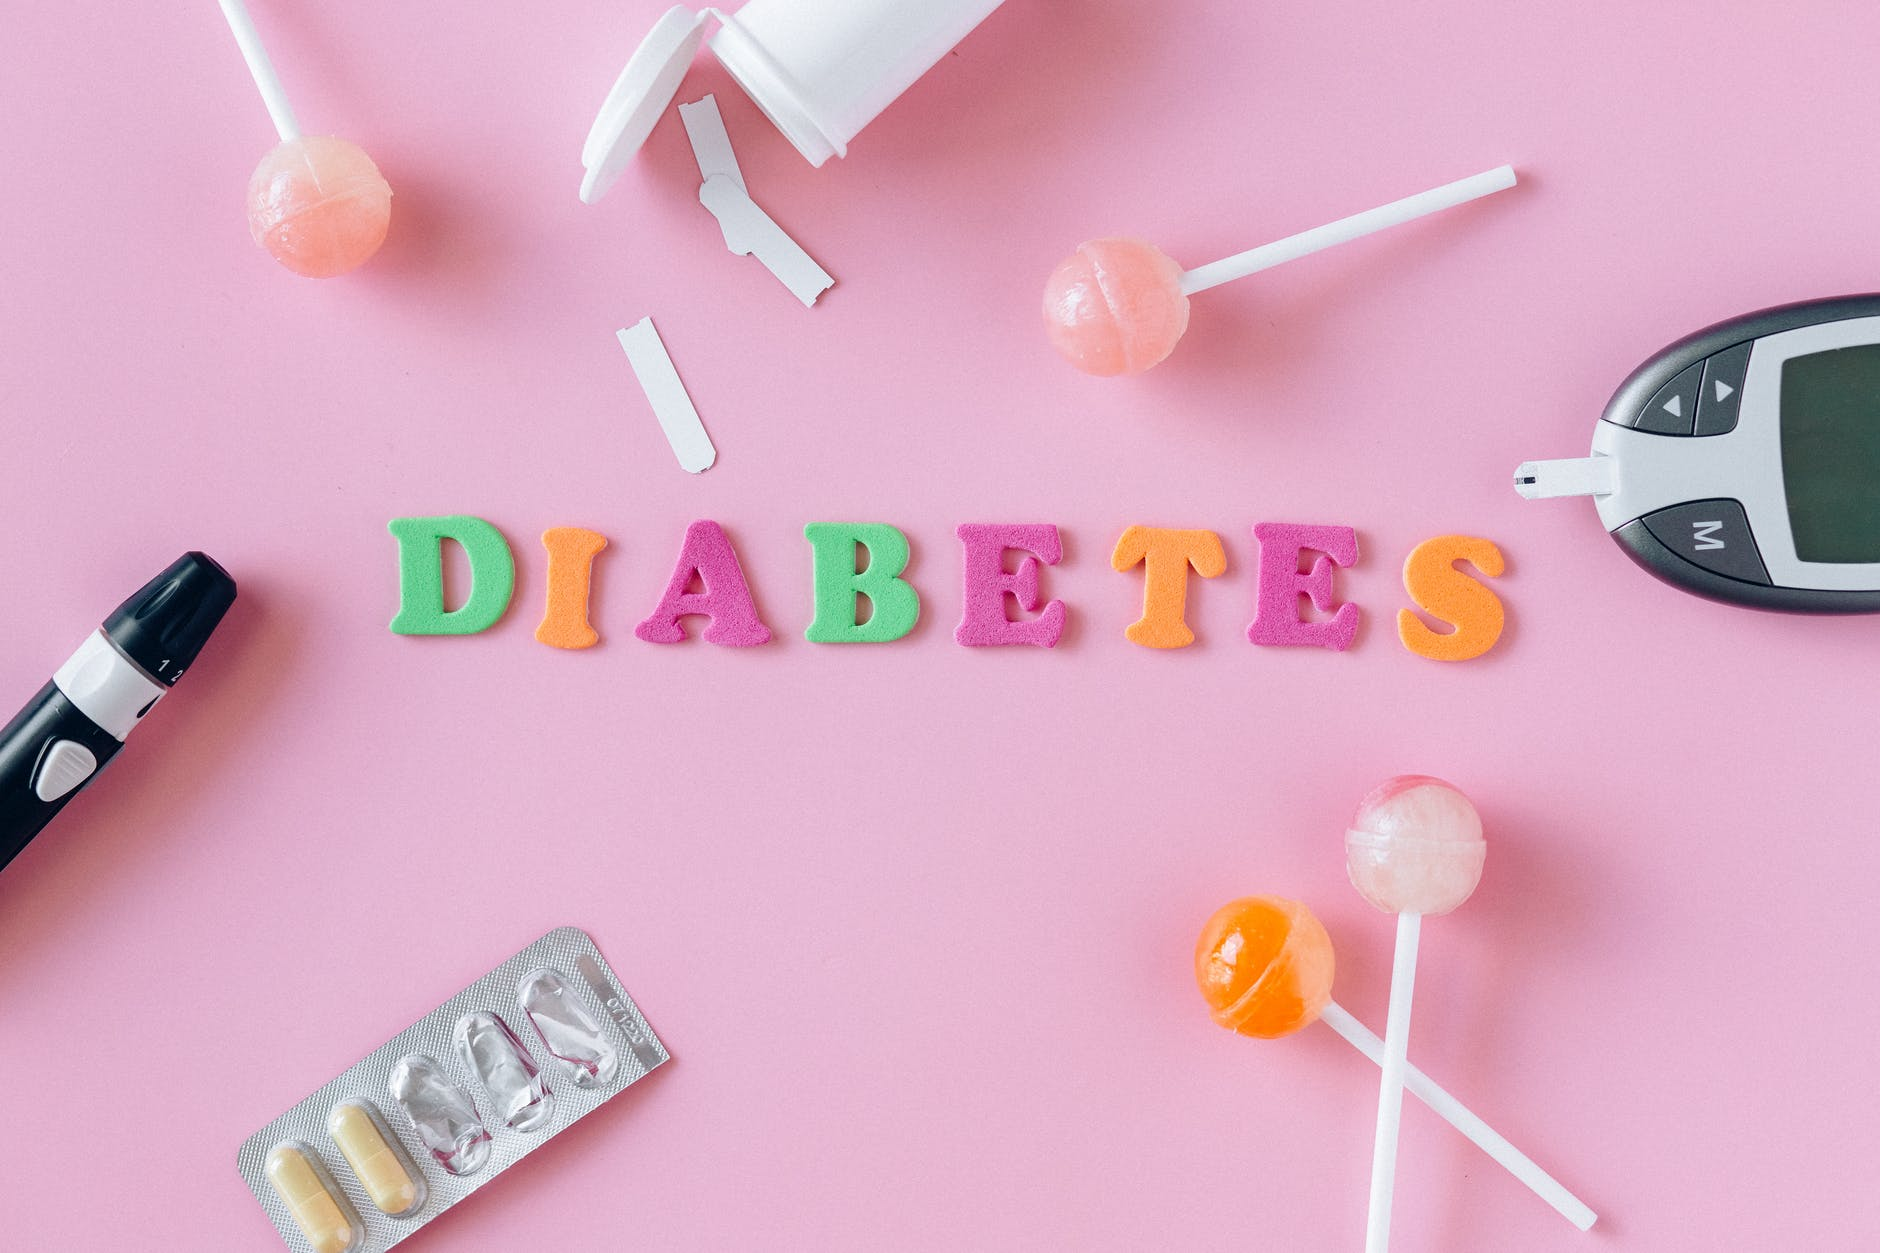 A Picture with diabetes written on a postcard, on the postcard is a glucometer.